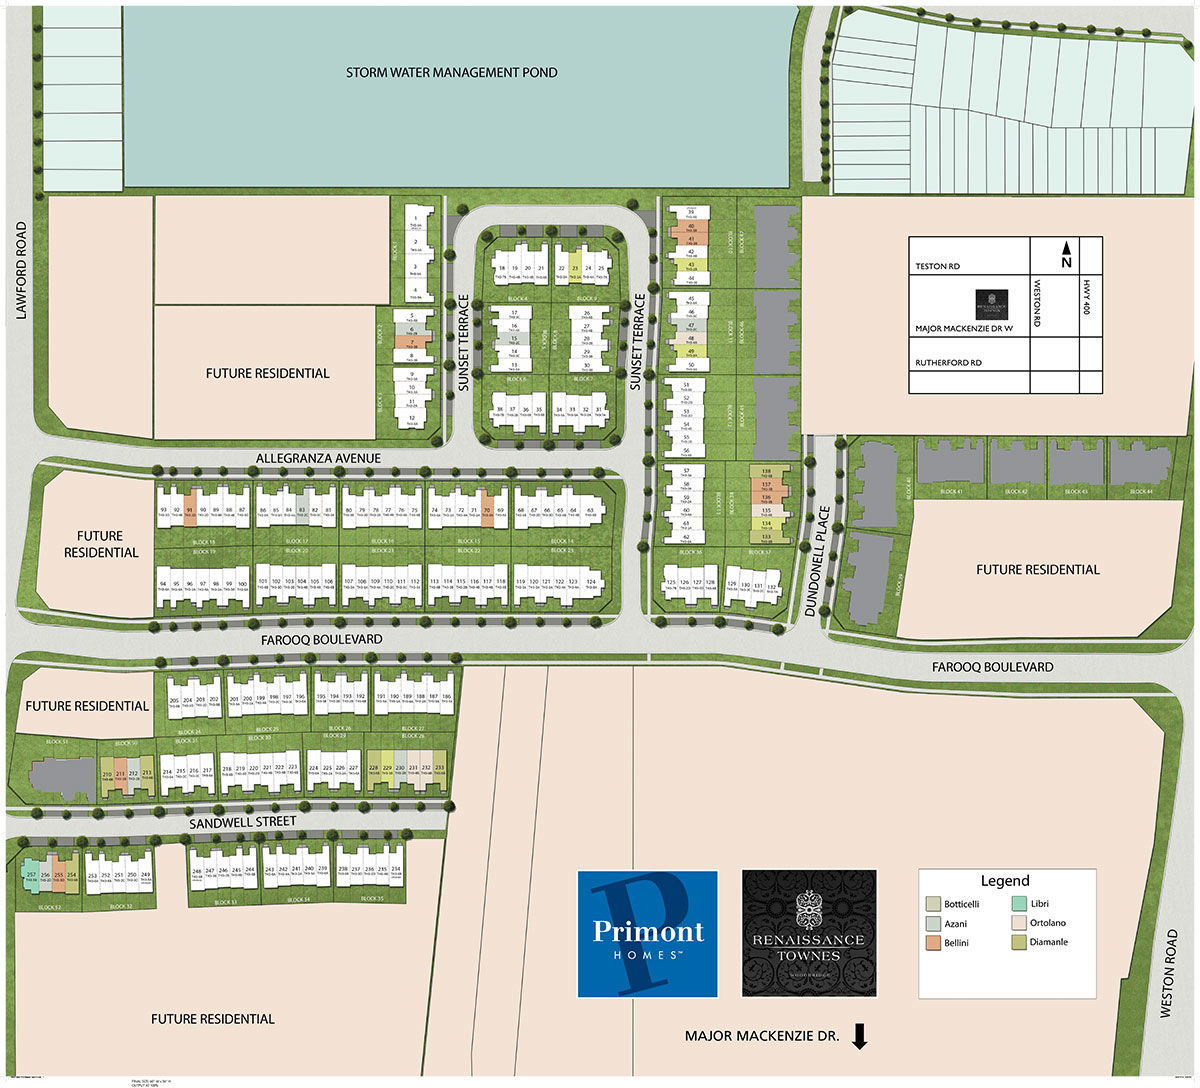 Site plan for Renaissance Townes in Vaughan, Ontario